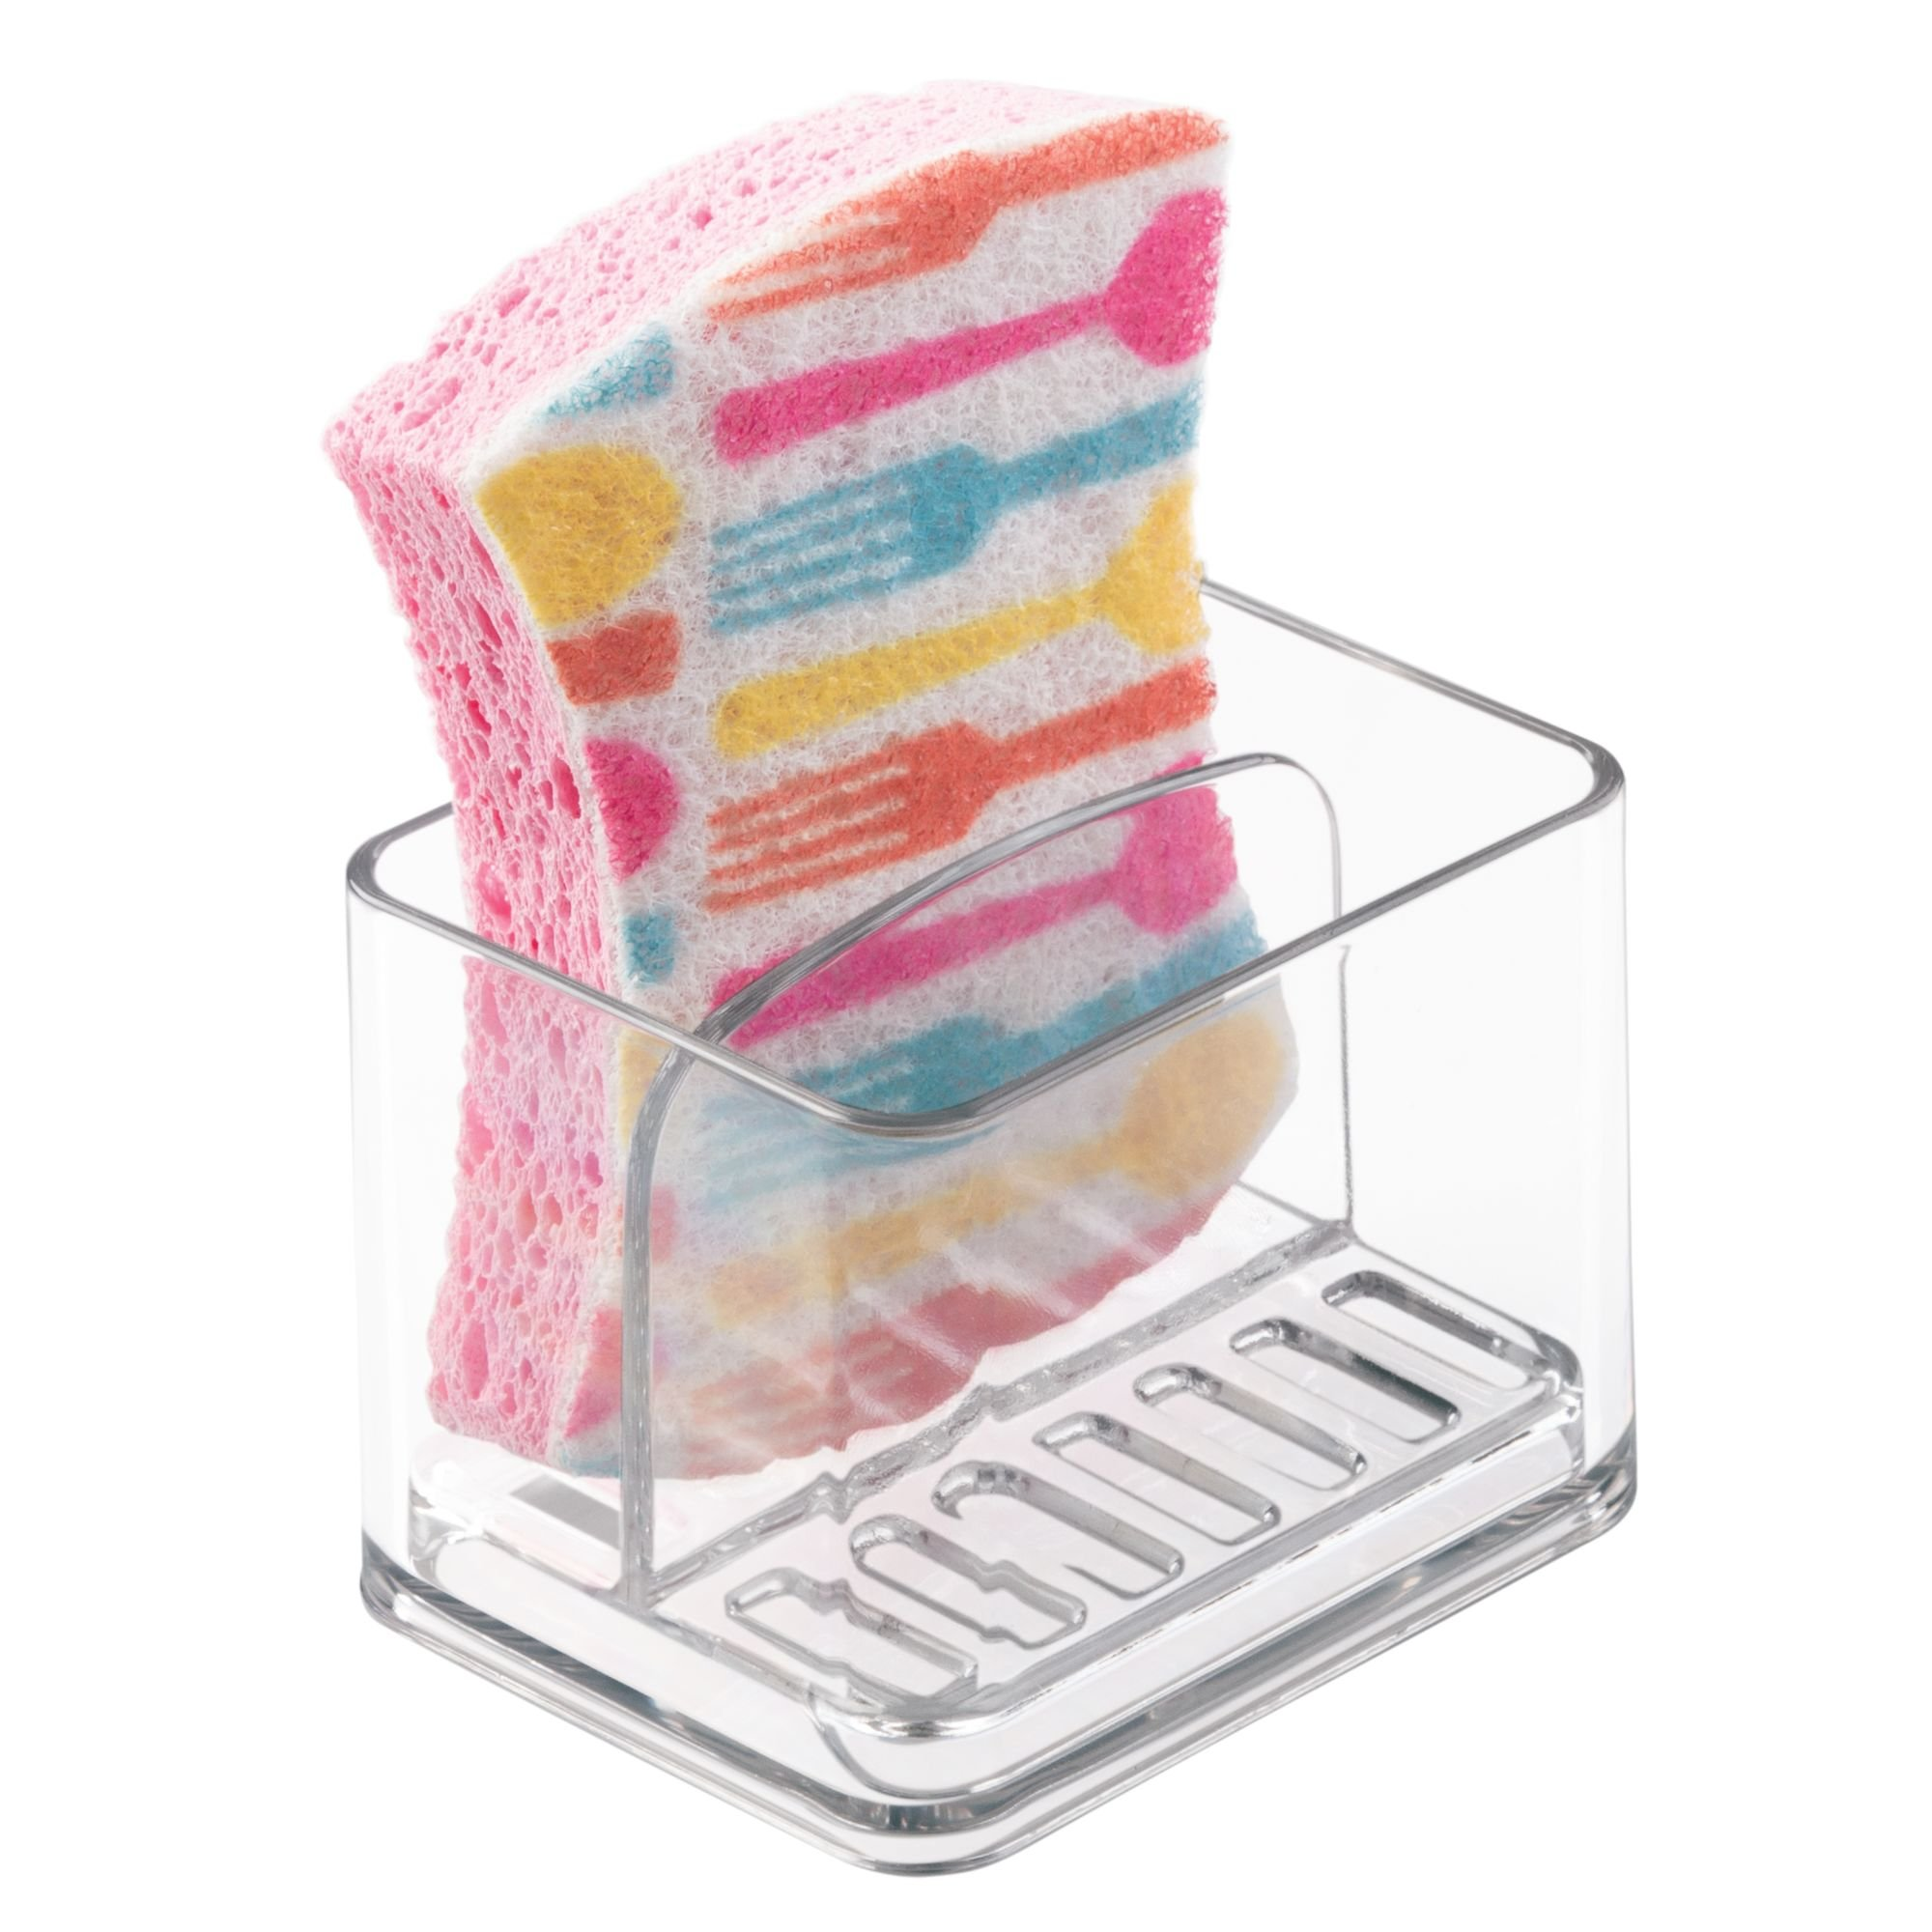 mDesign Kitchen Sink Double Holder for Sponges, Scrubbers - Pack of 2, Clear by mDesign (Image #4)